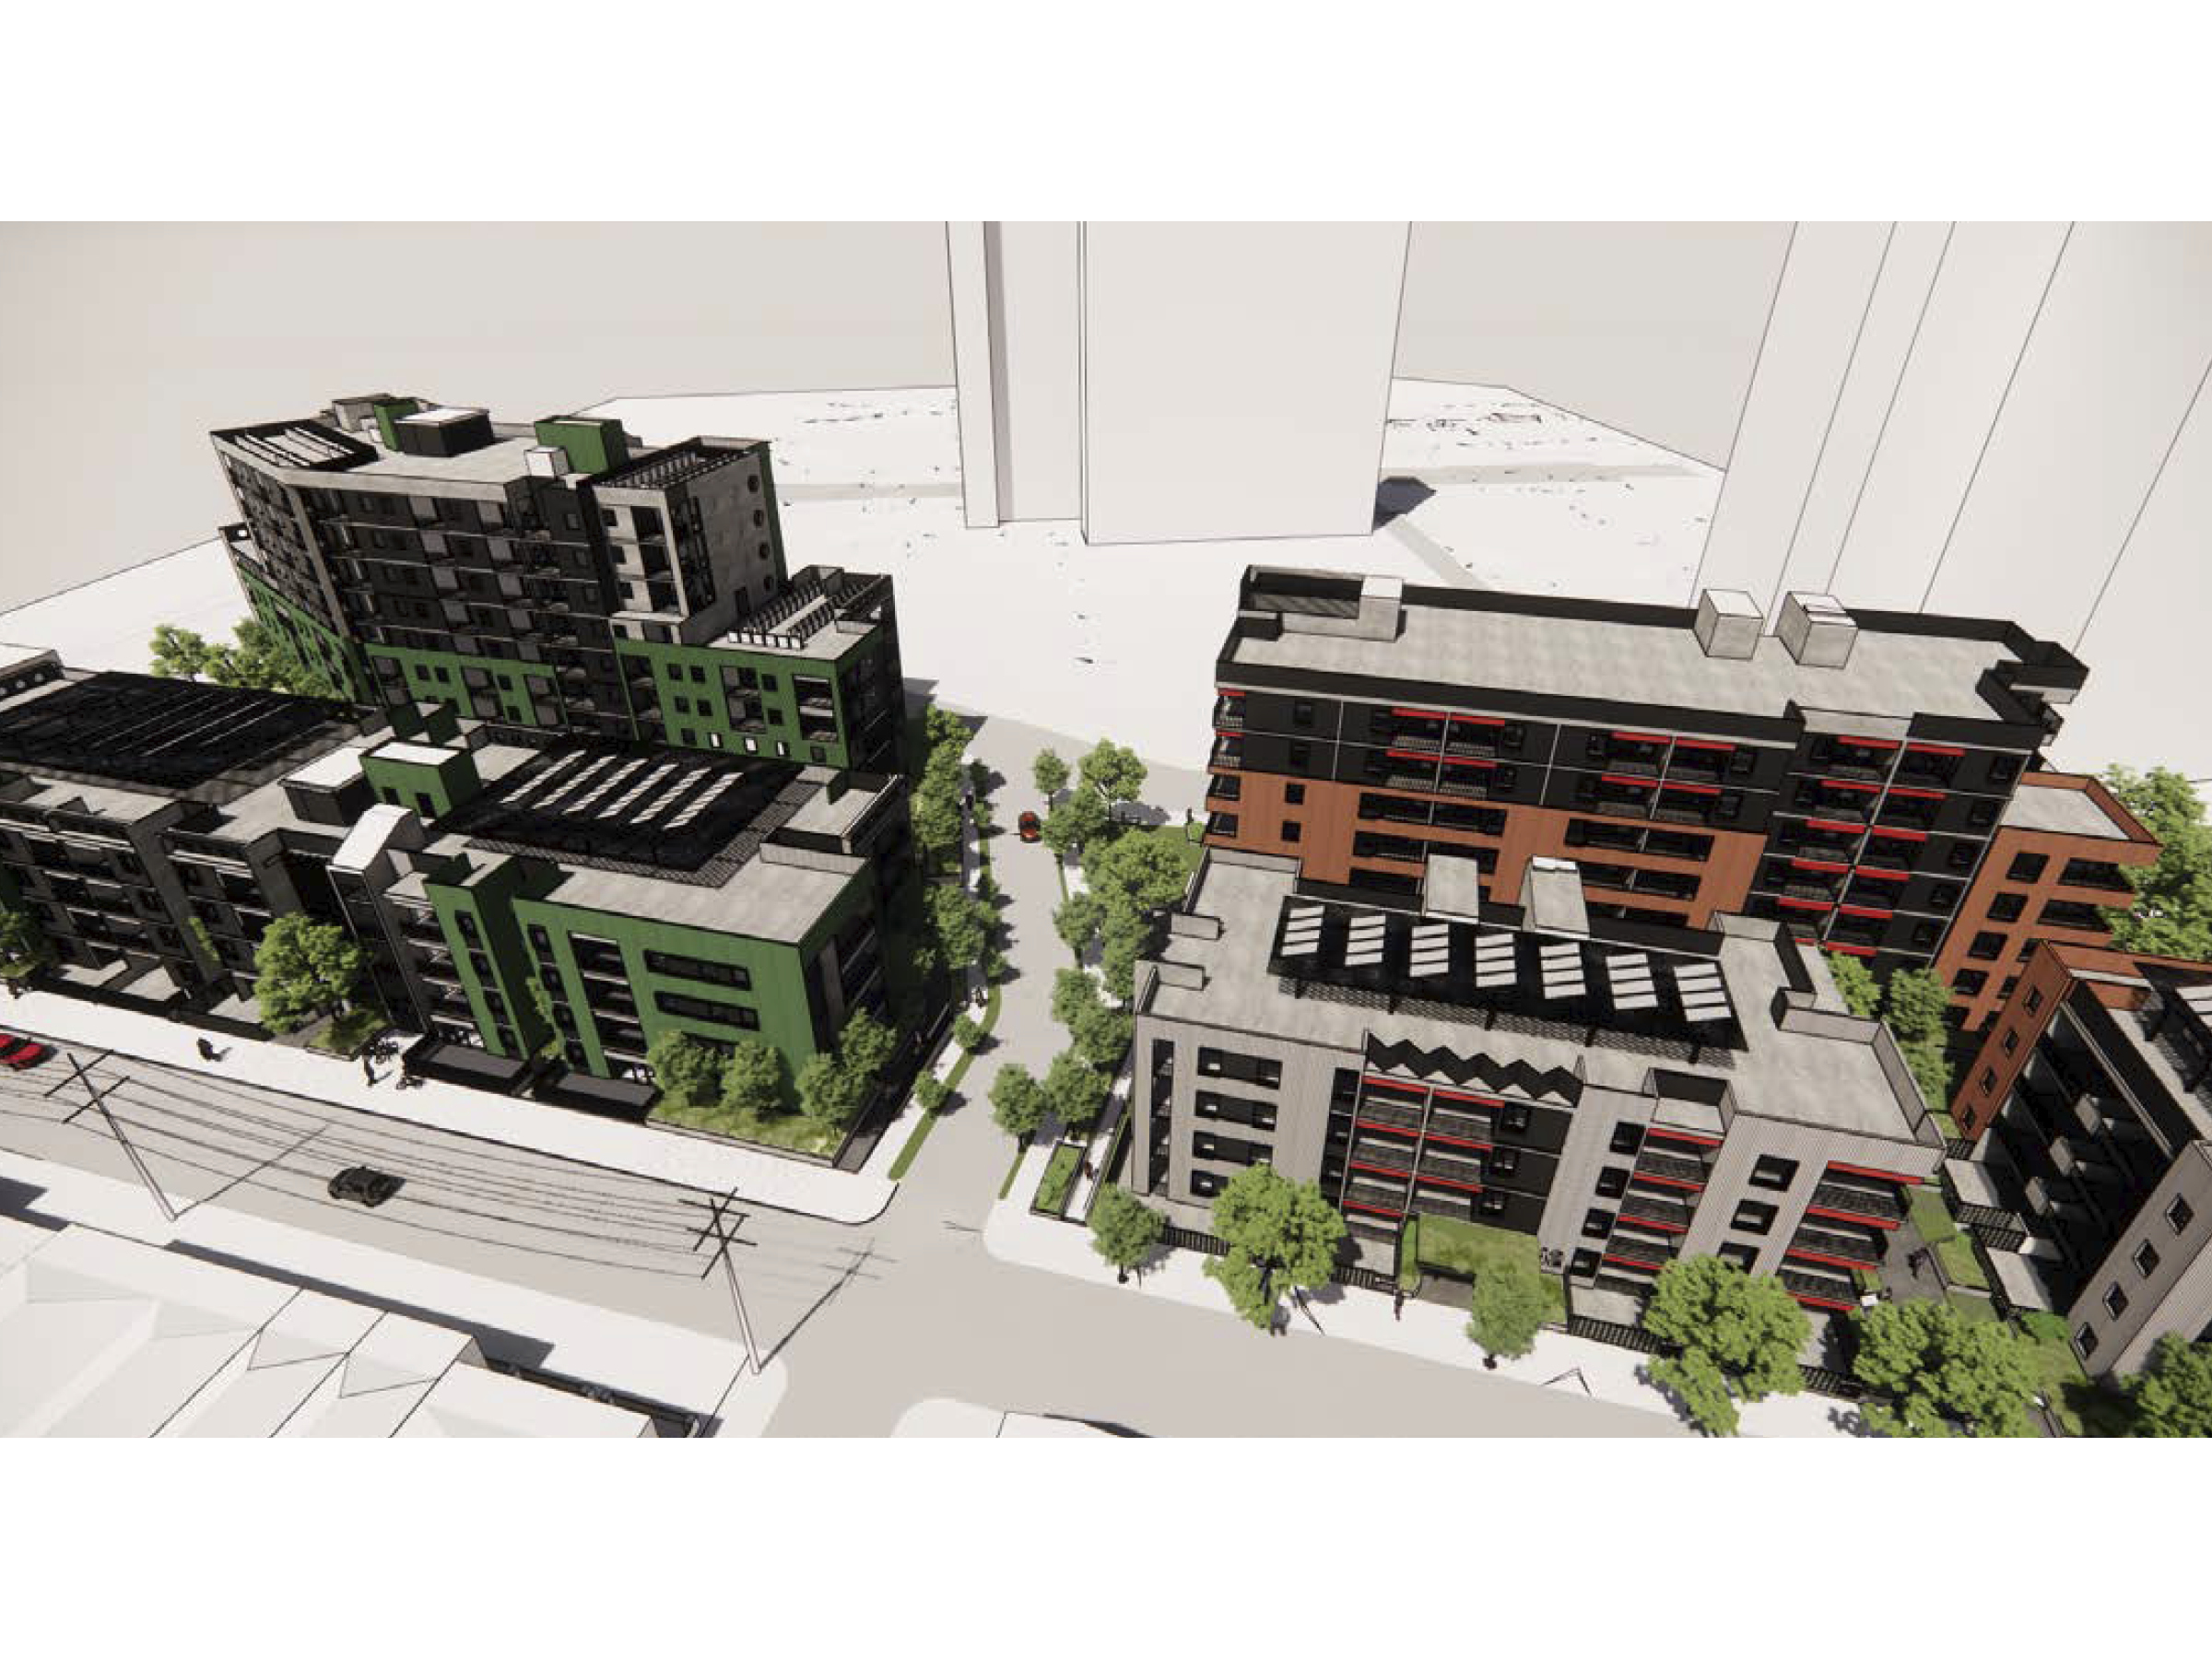 Artist impression looking at the new development from Victoria Street looking east